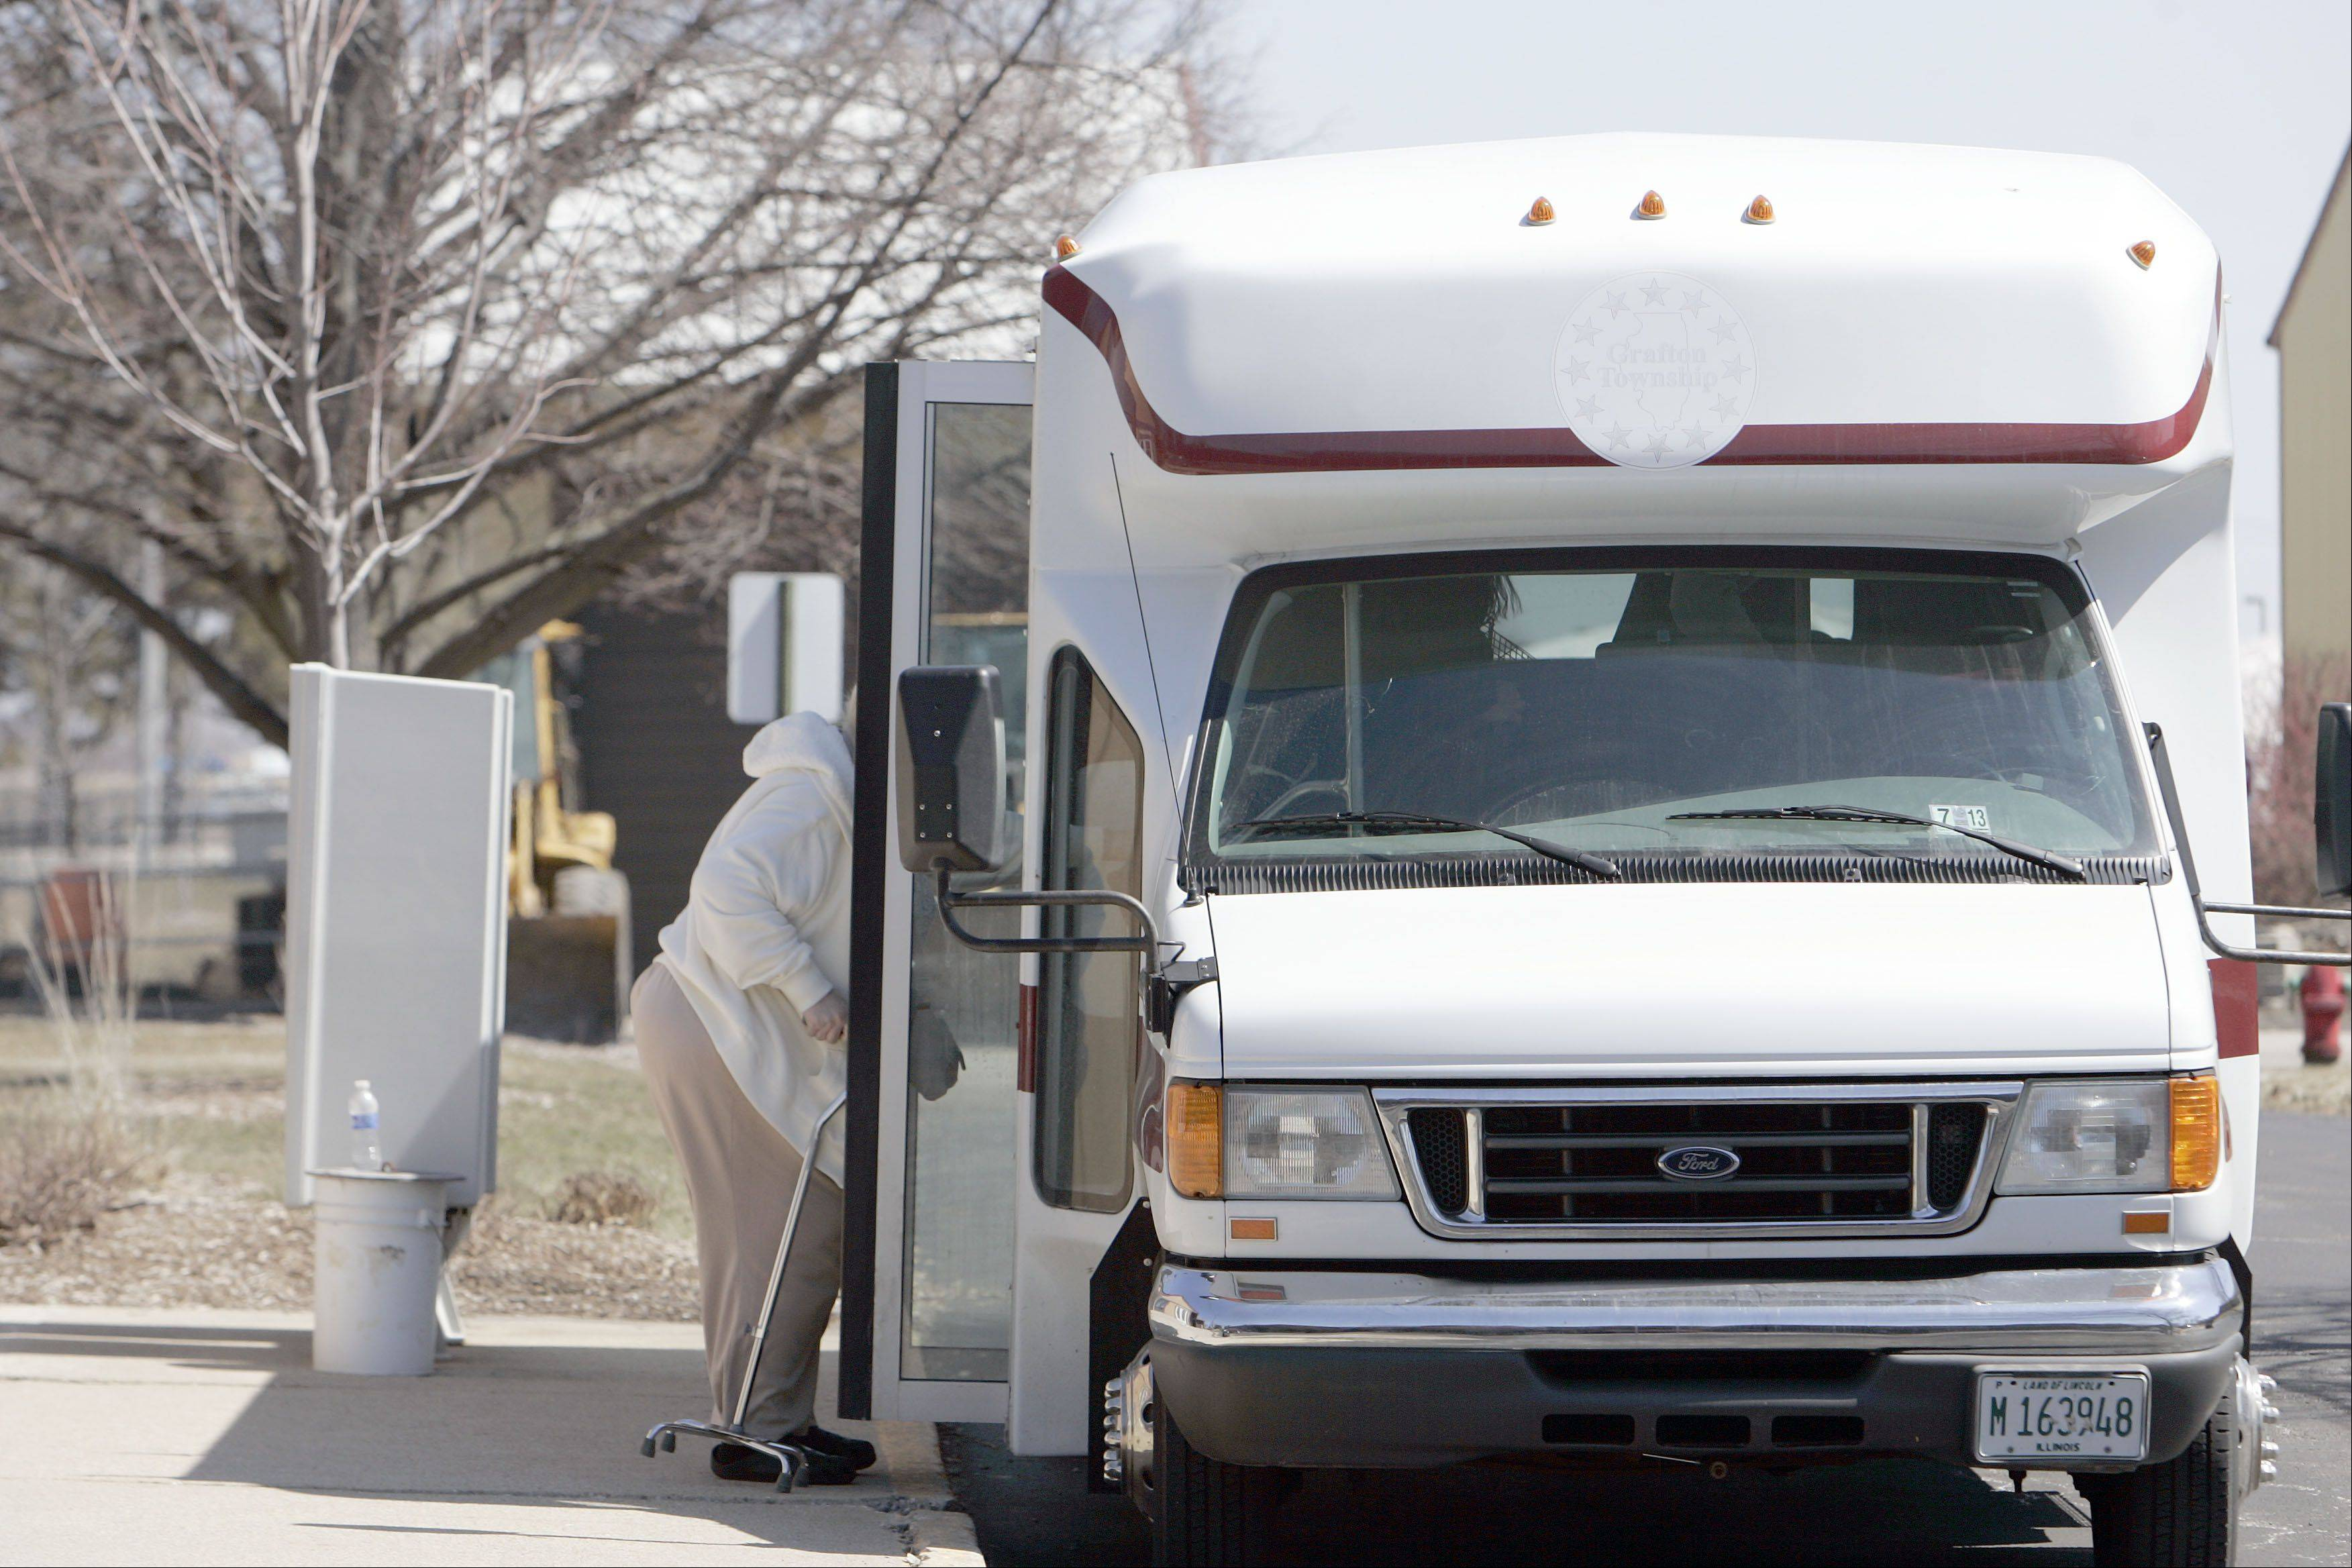 Outgoing Grafton Township Supervisor Linda Moore had threatened a shut down of township services, including this bus service for seniors and disabled people.